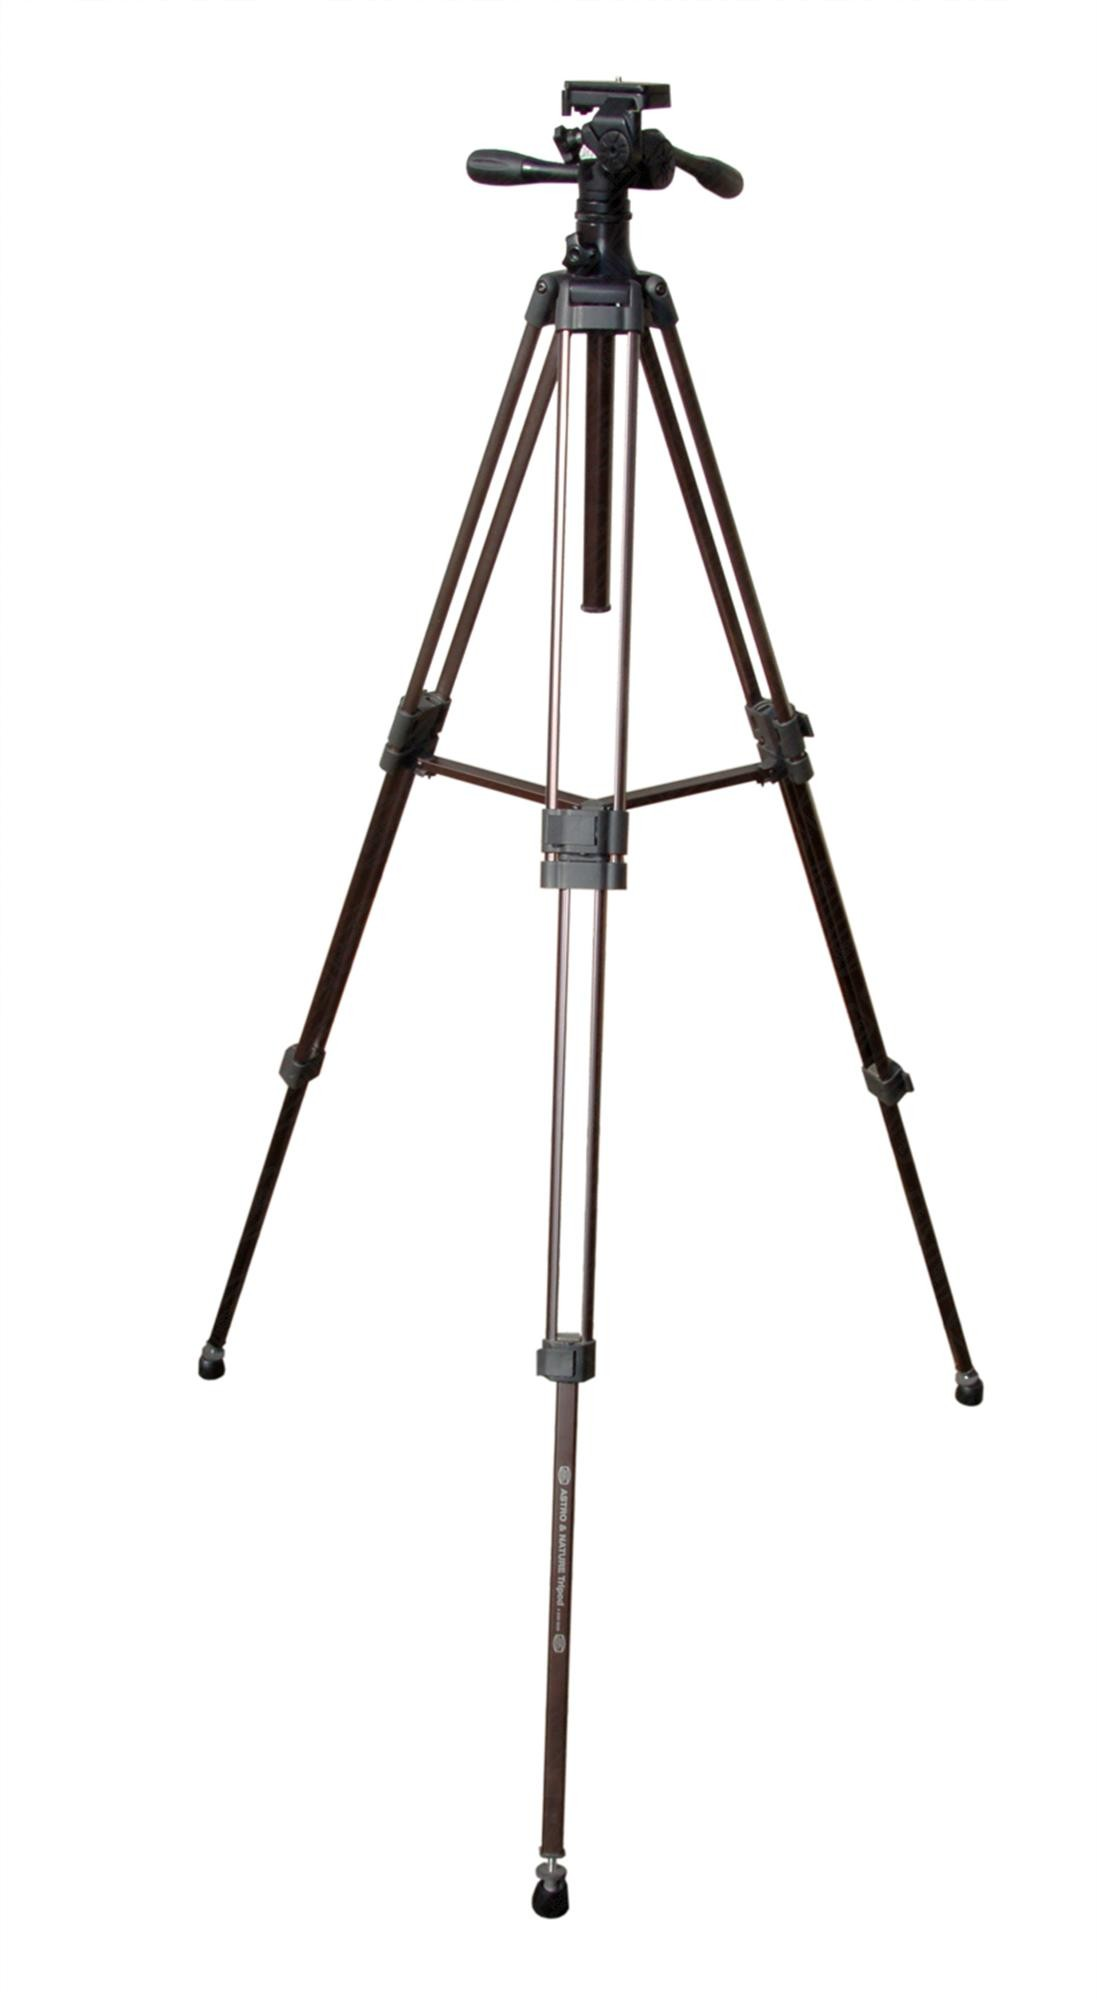 Astro & Nature Tripod w. Fluid Head and quick mounting plate